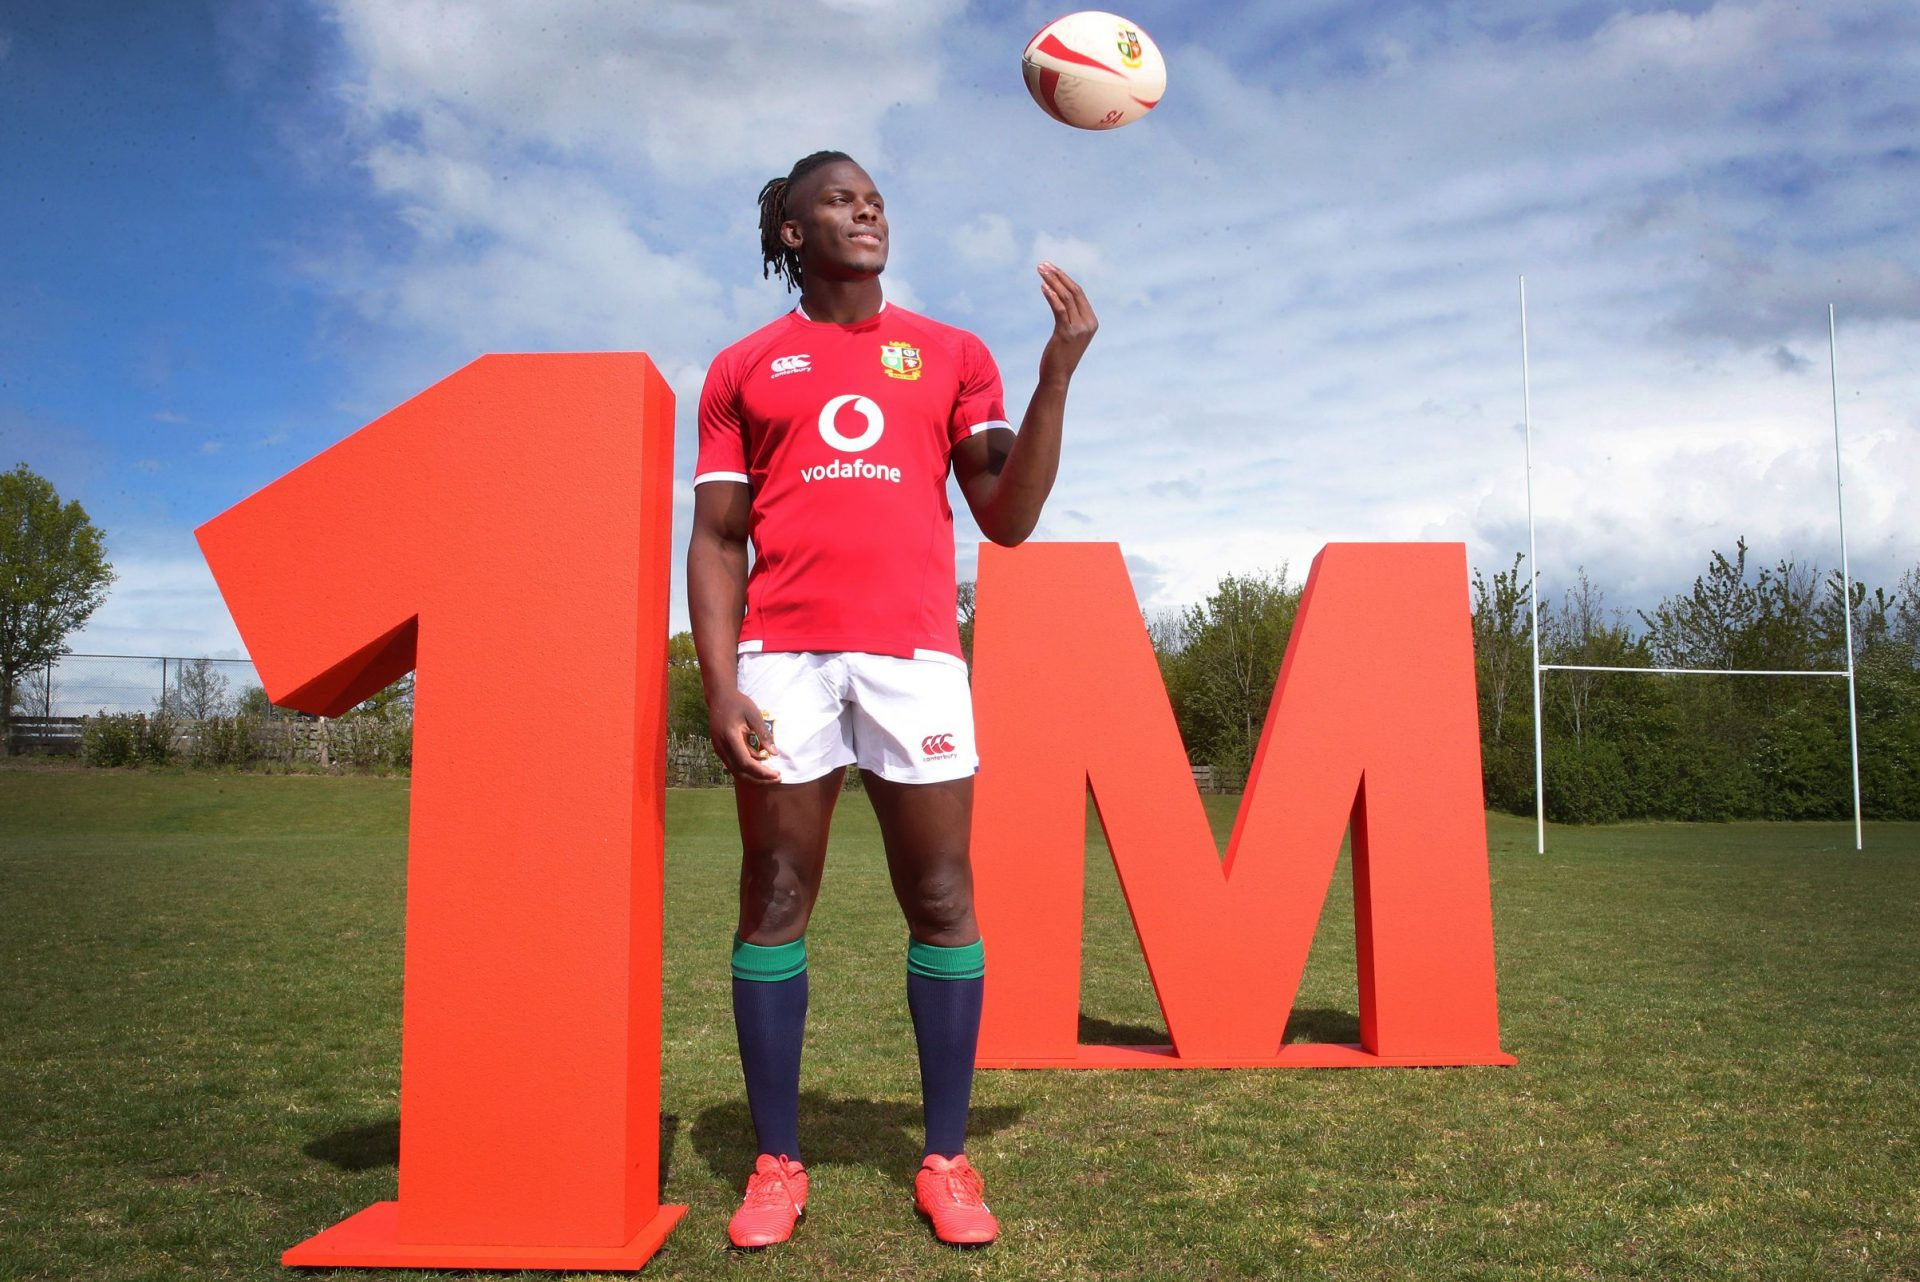 Maro Itoje supporting Vodafone's pledge to connect one million people in digital poverty by the end of 2022.